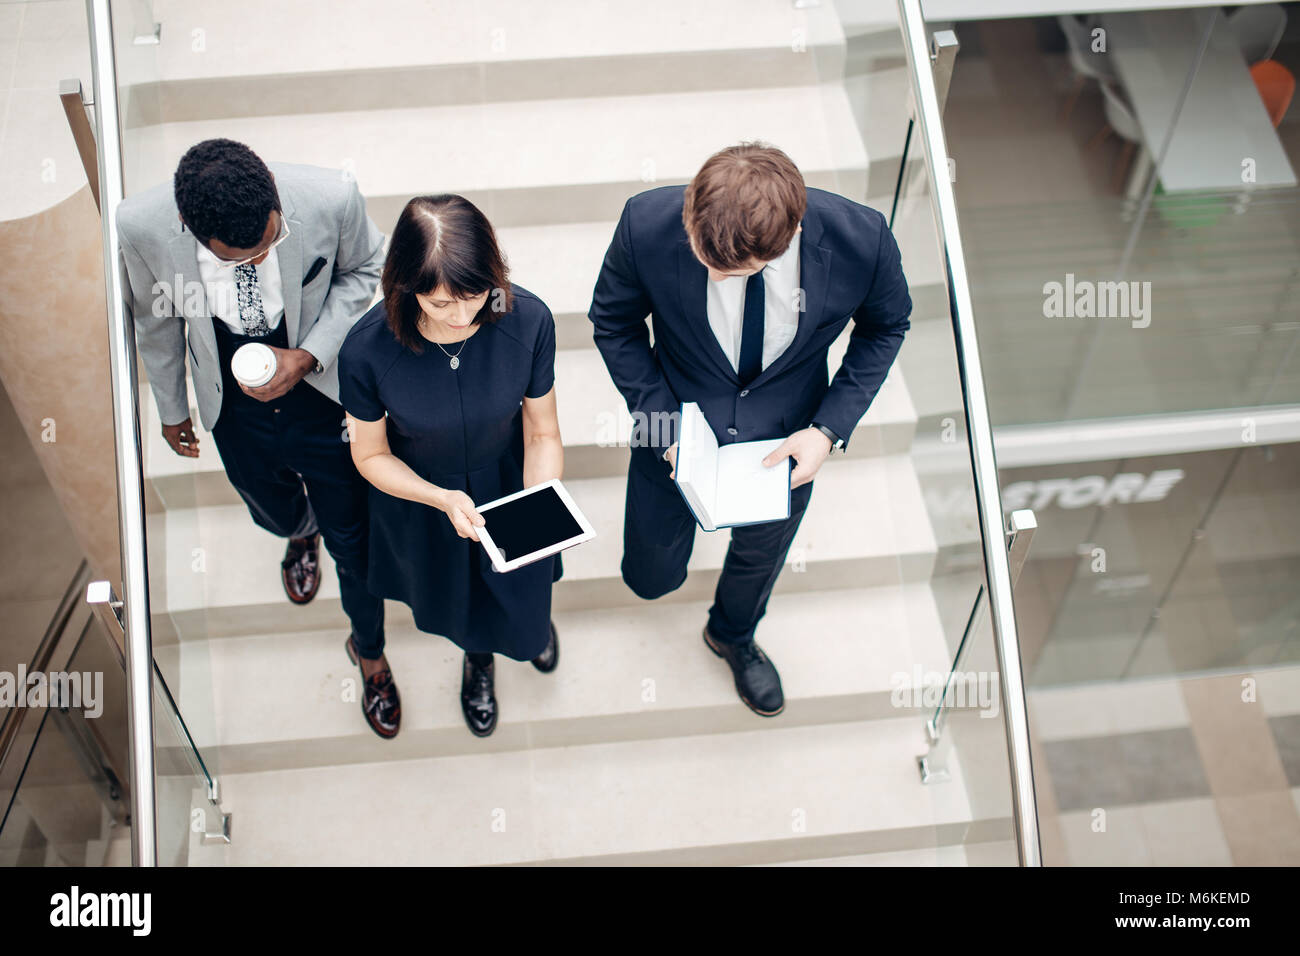 Three multiracial business people walking down on stairs with digital tablet - Stock Image